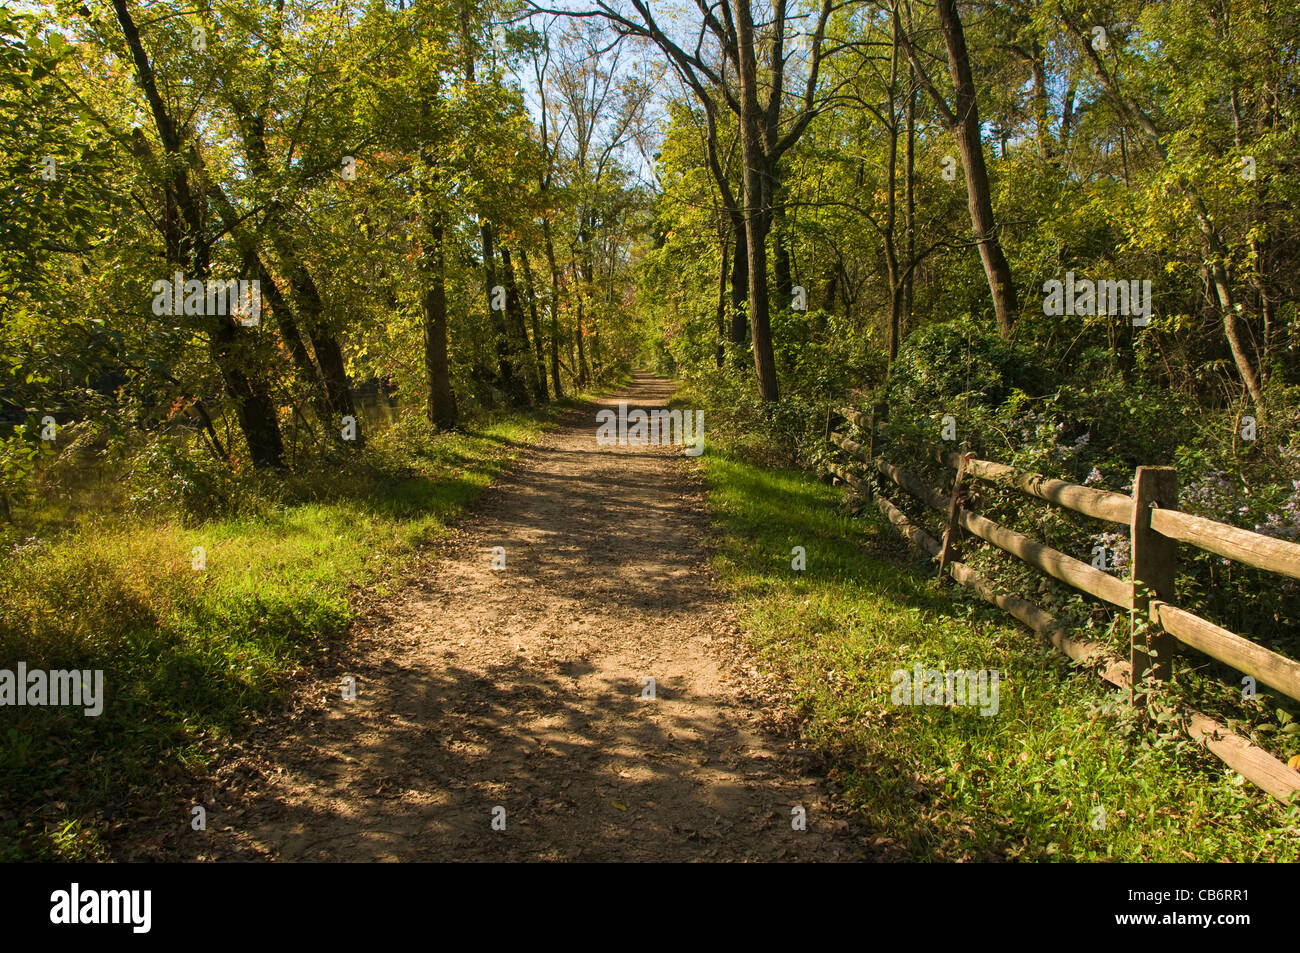 Trail along the D&R (Delaware & Raritan) Canal in New Jersey in early autumn - Stock Image